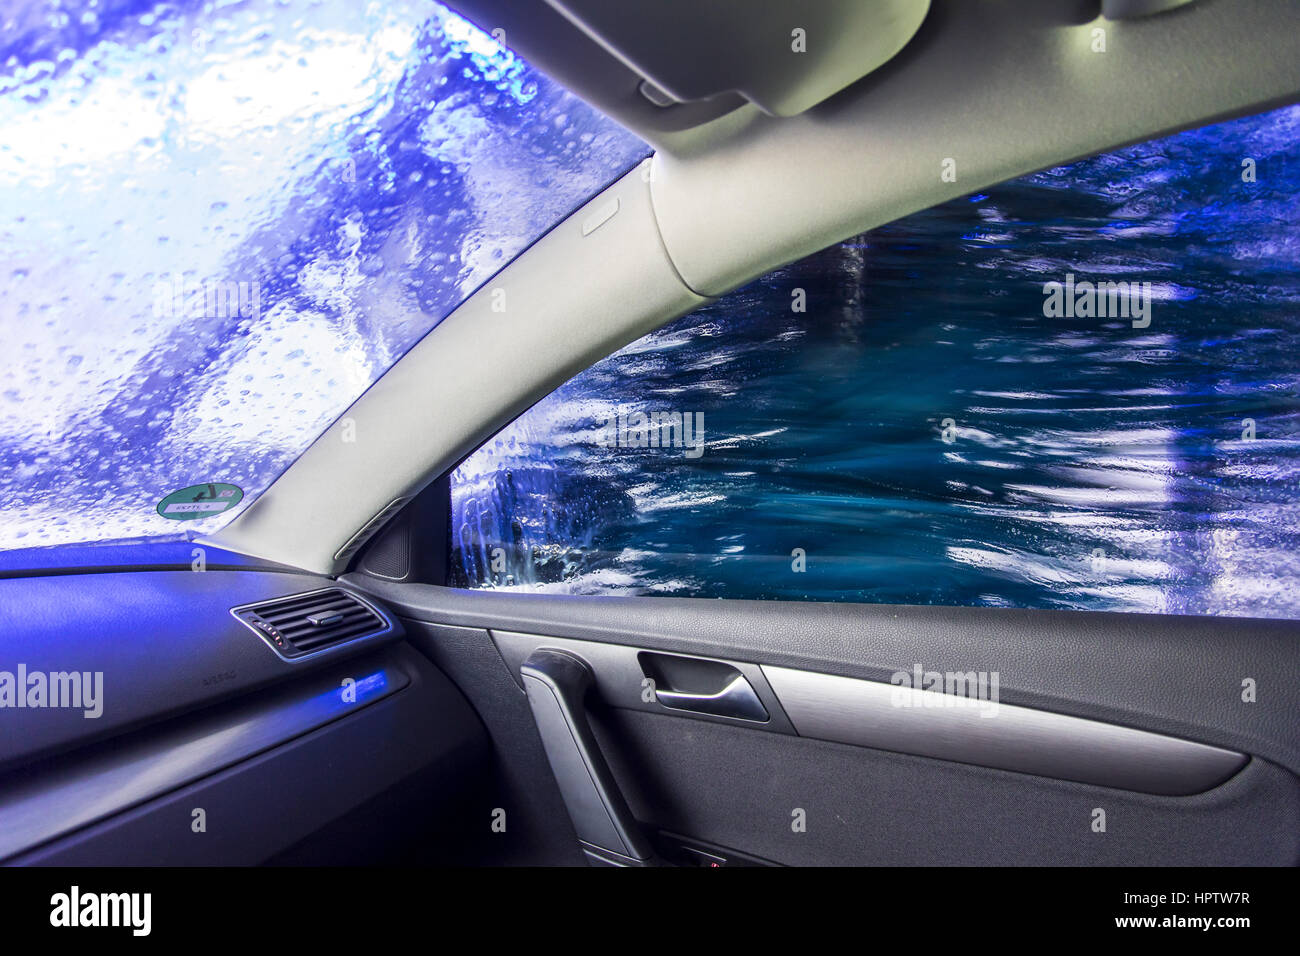 Car in an automatic car wash site, cleaning foam is sprayed on, rotating cleaning brush, - Stock Image